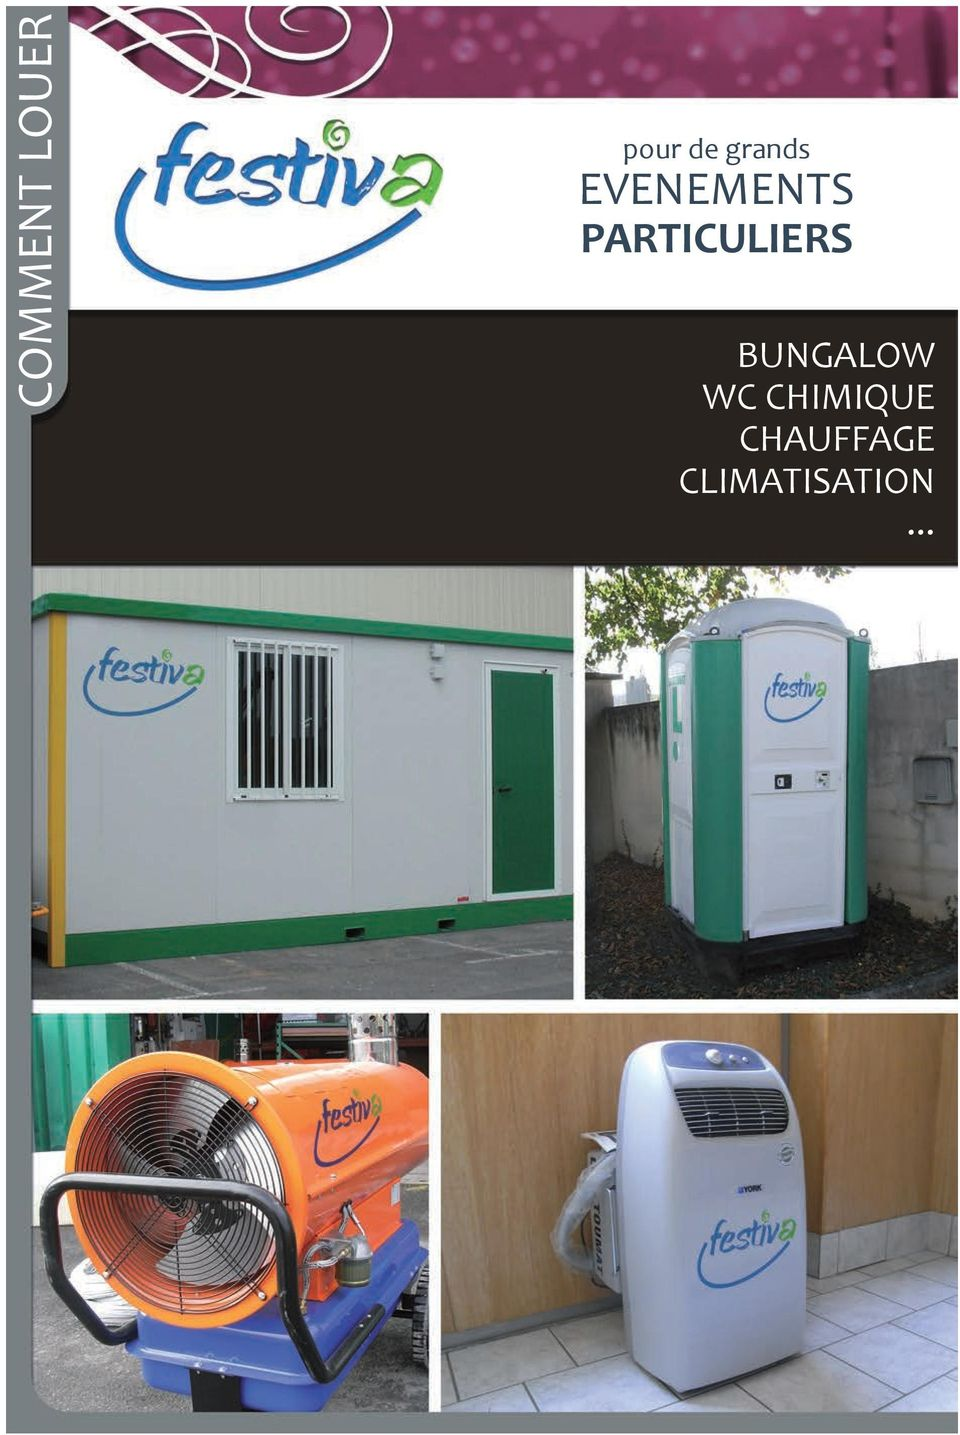 PARTICULIERS BUNGALOW WC